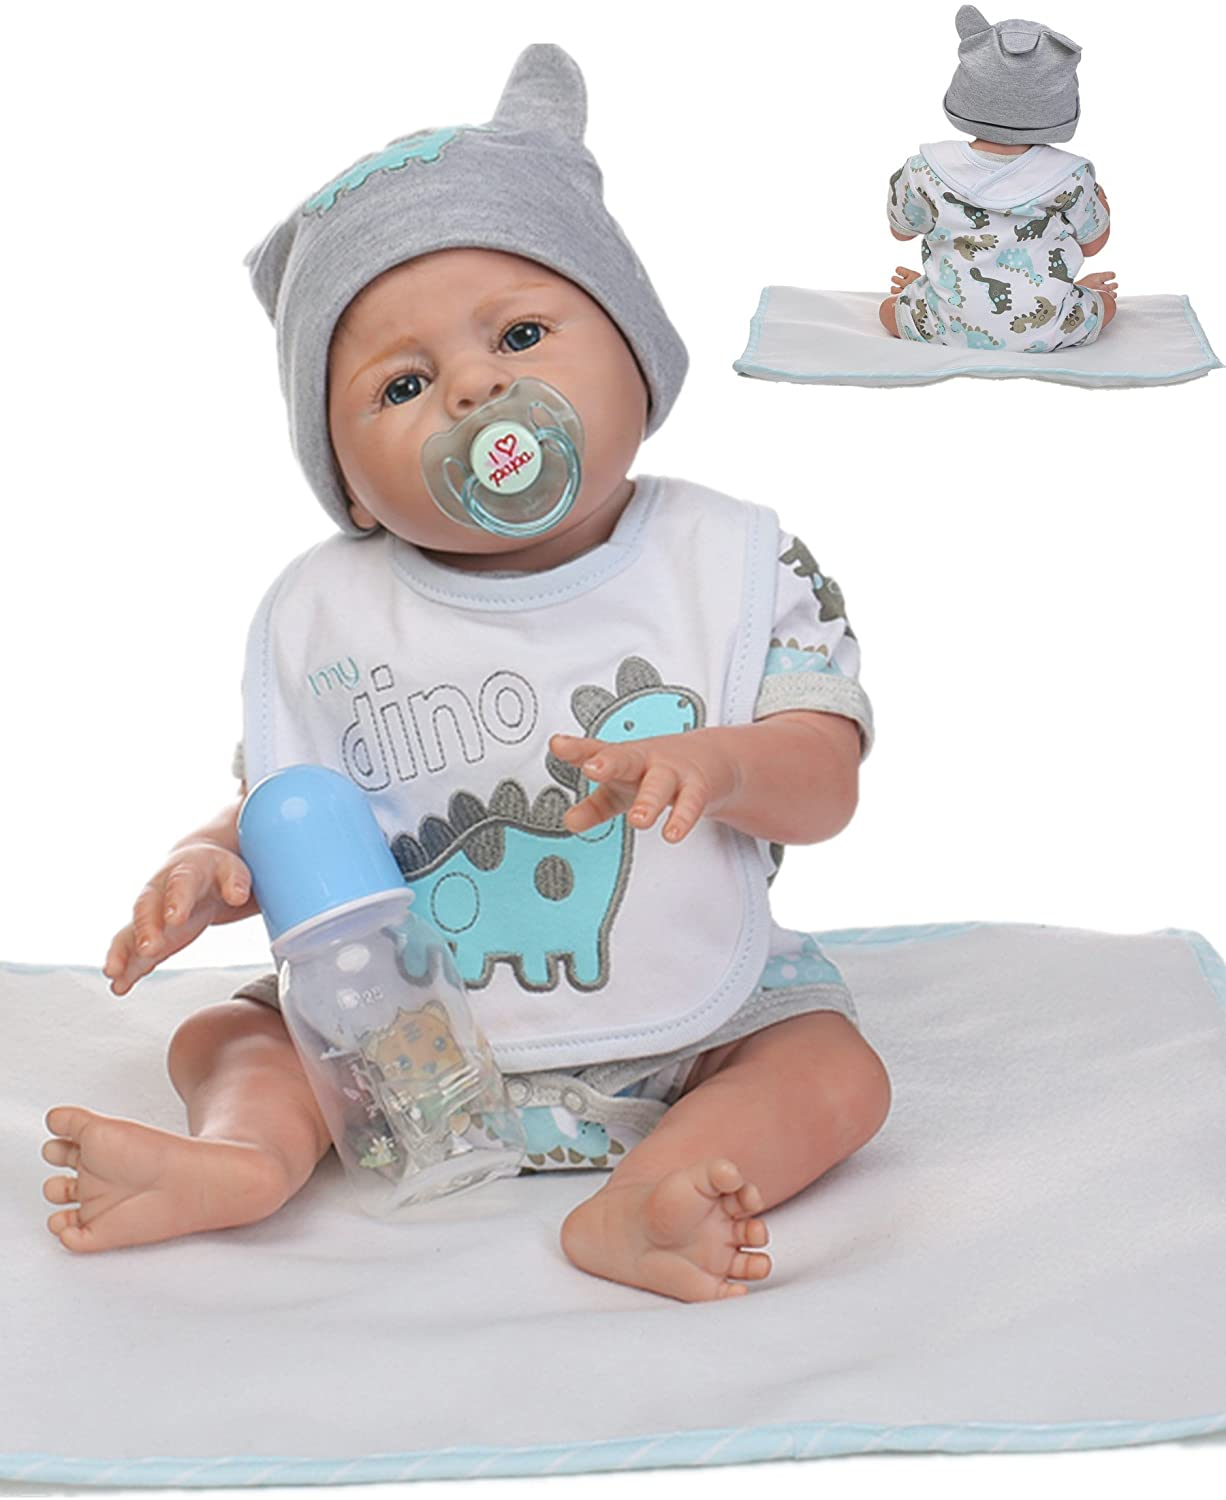 Amazon Com Reborn Baby Doll Boy Silicone Full Body Boy Realistic Anatomically Correct 20inch 50cm Weighted Baby Gray Doll Vinyl Toys Games